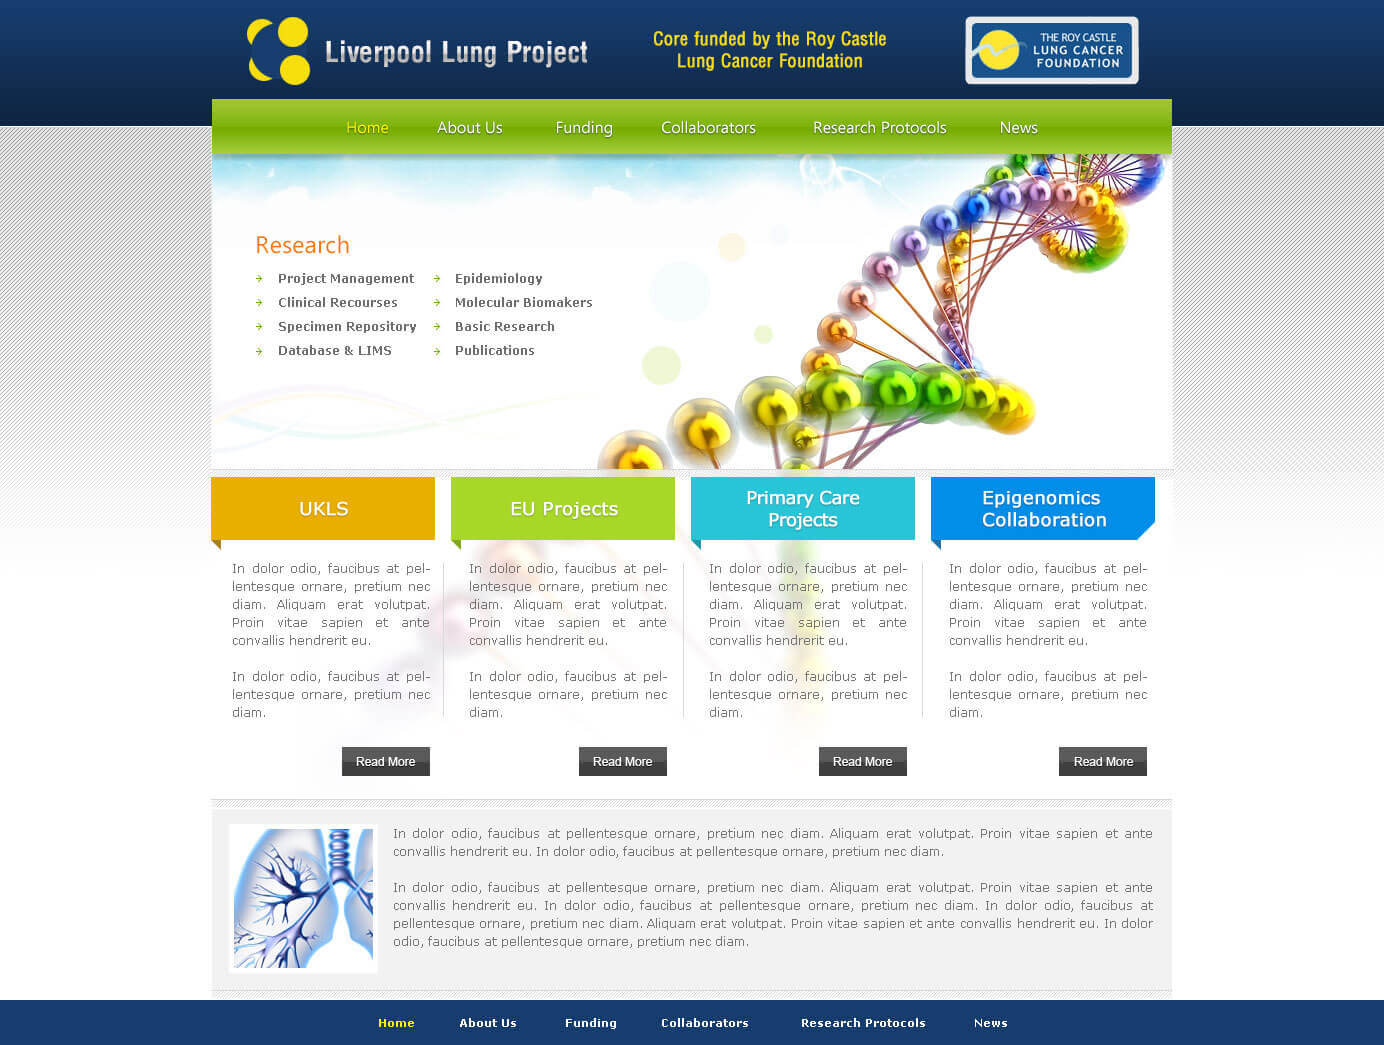 LiverPool Lung Project